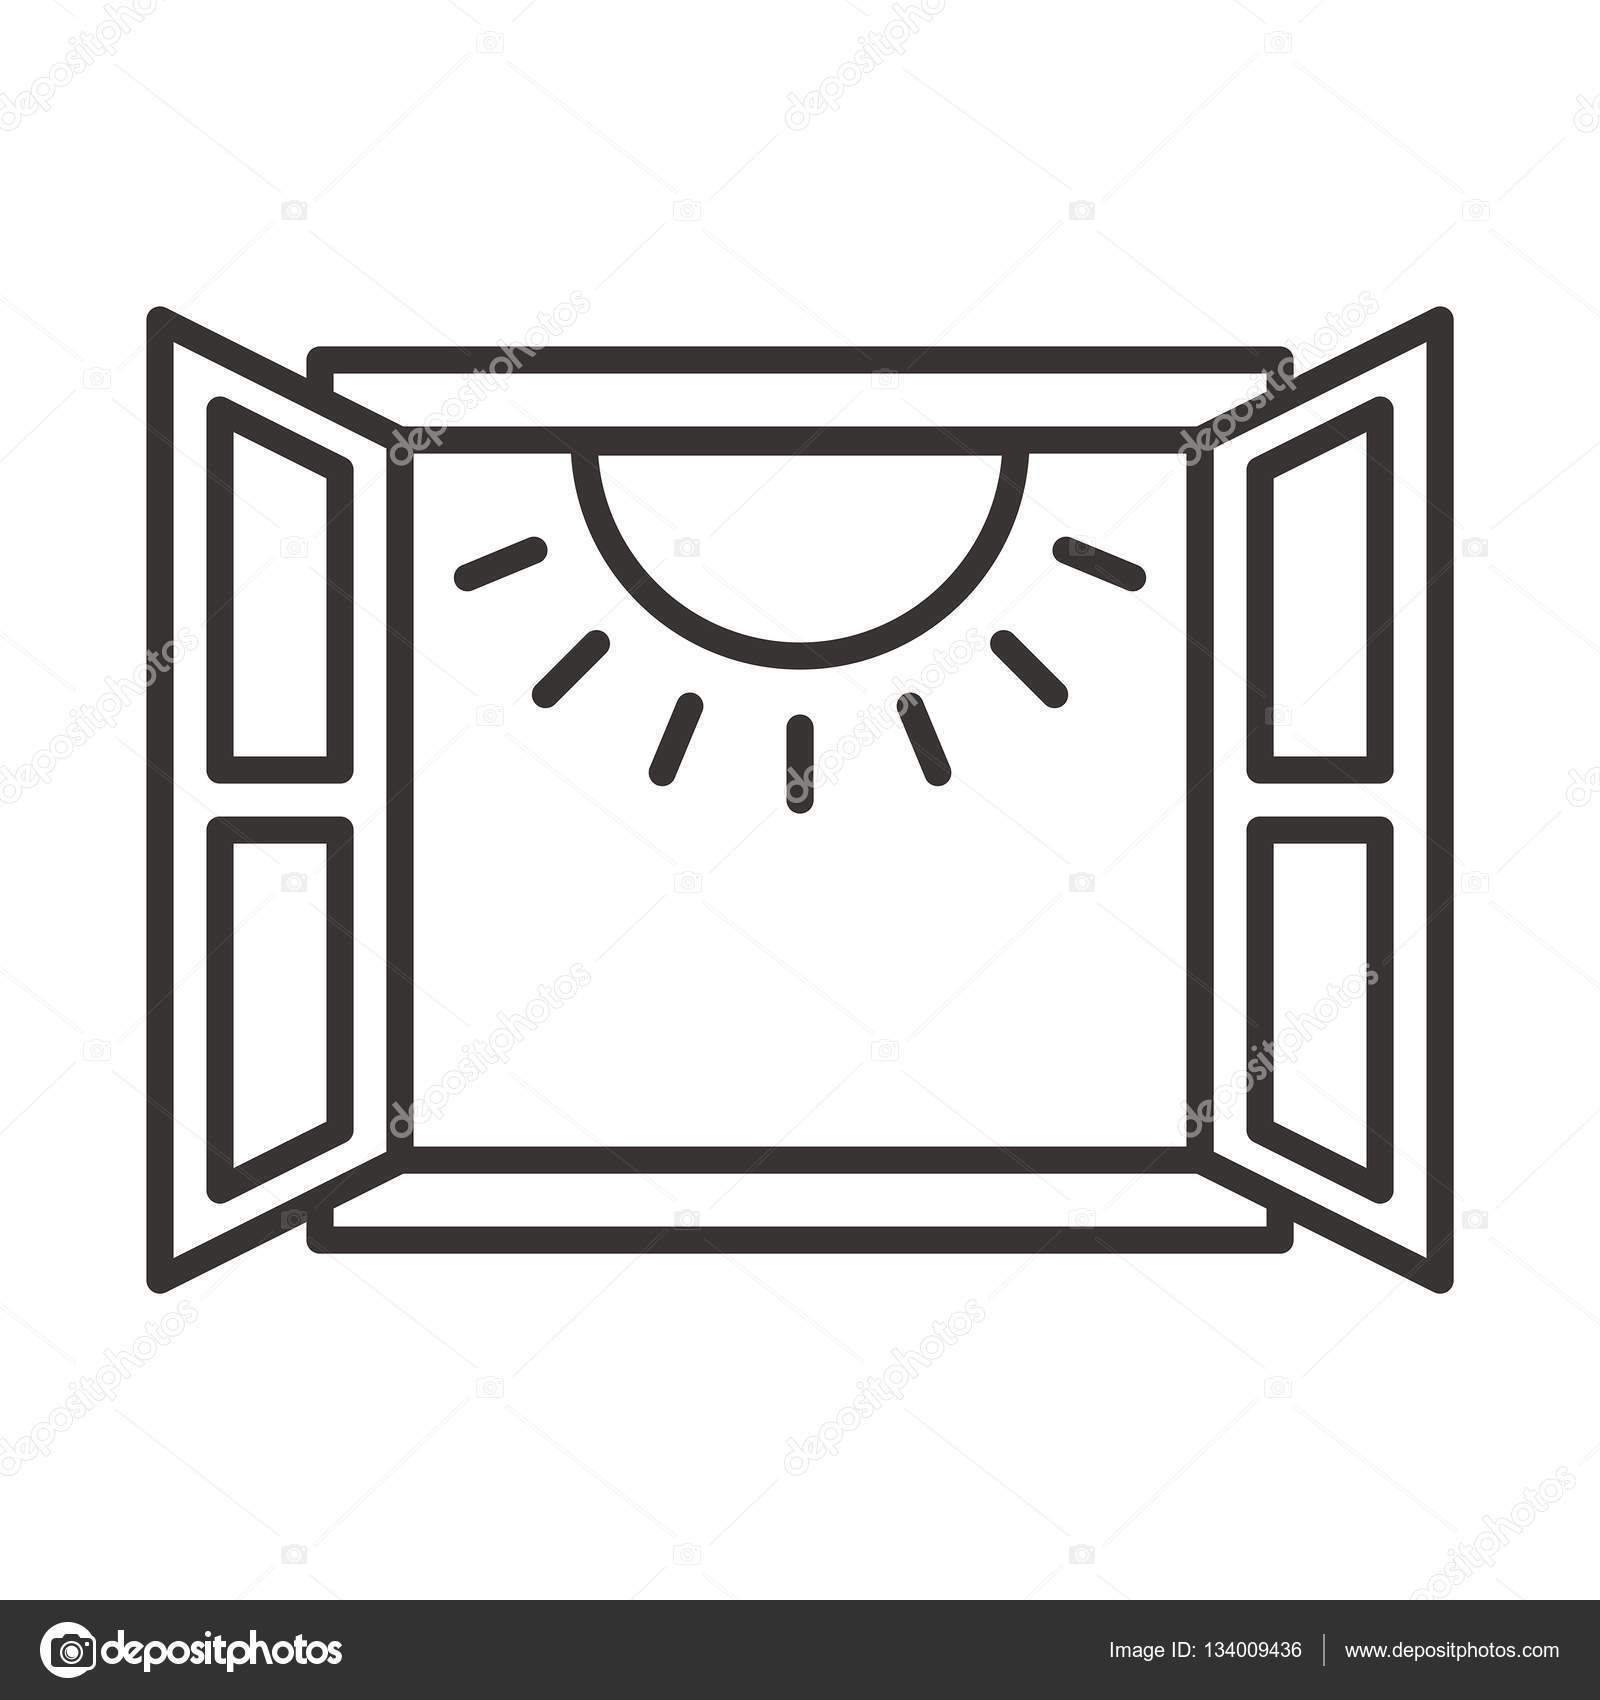 Open window clipart black and white 2 » Clipart Portal.